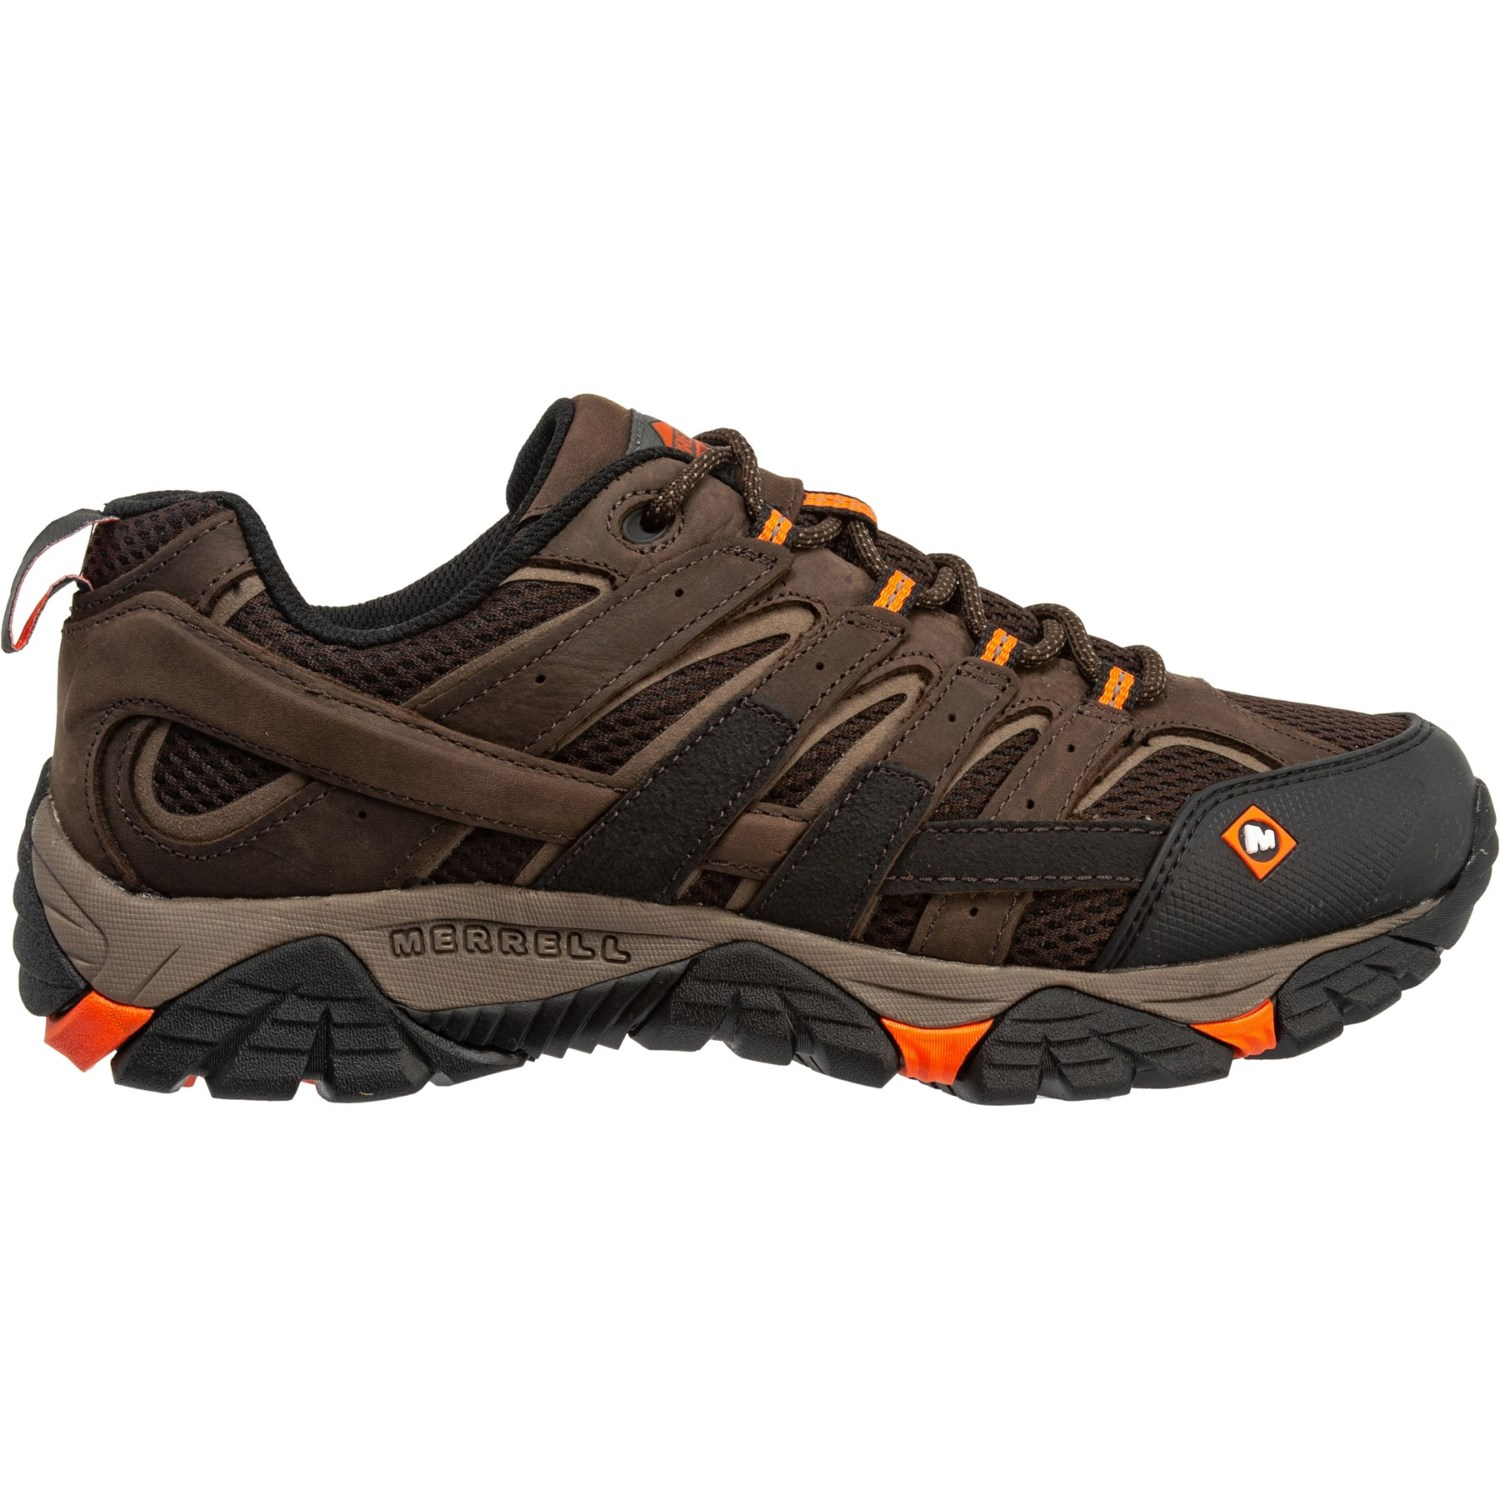 ceca2d934a081 Merrell Moab 2 Vapor Work Shoes (For Men) - Save 57%